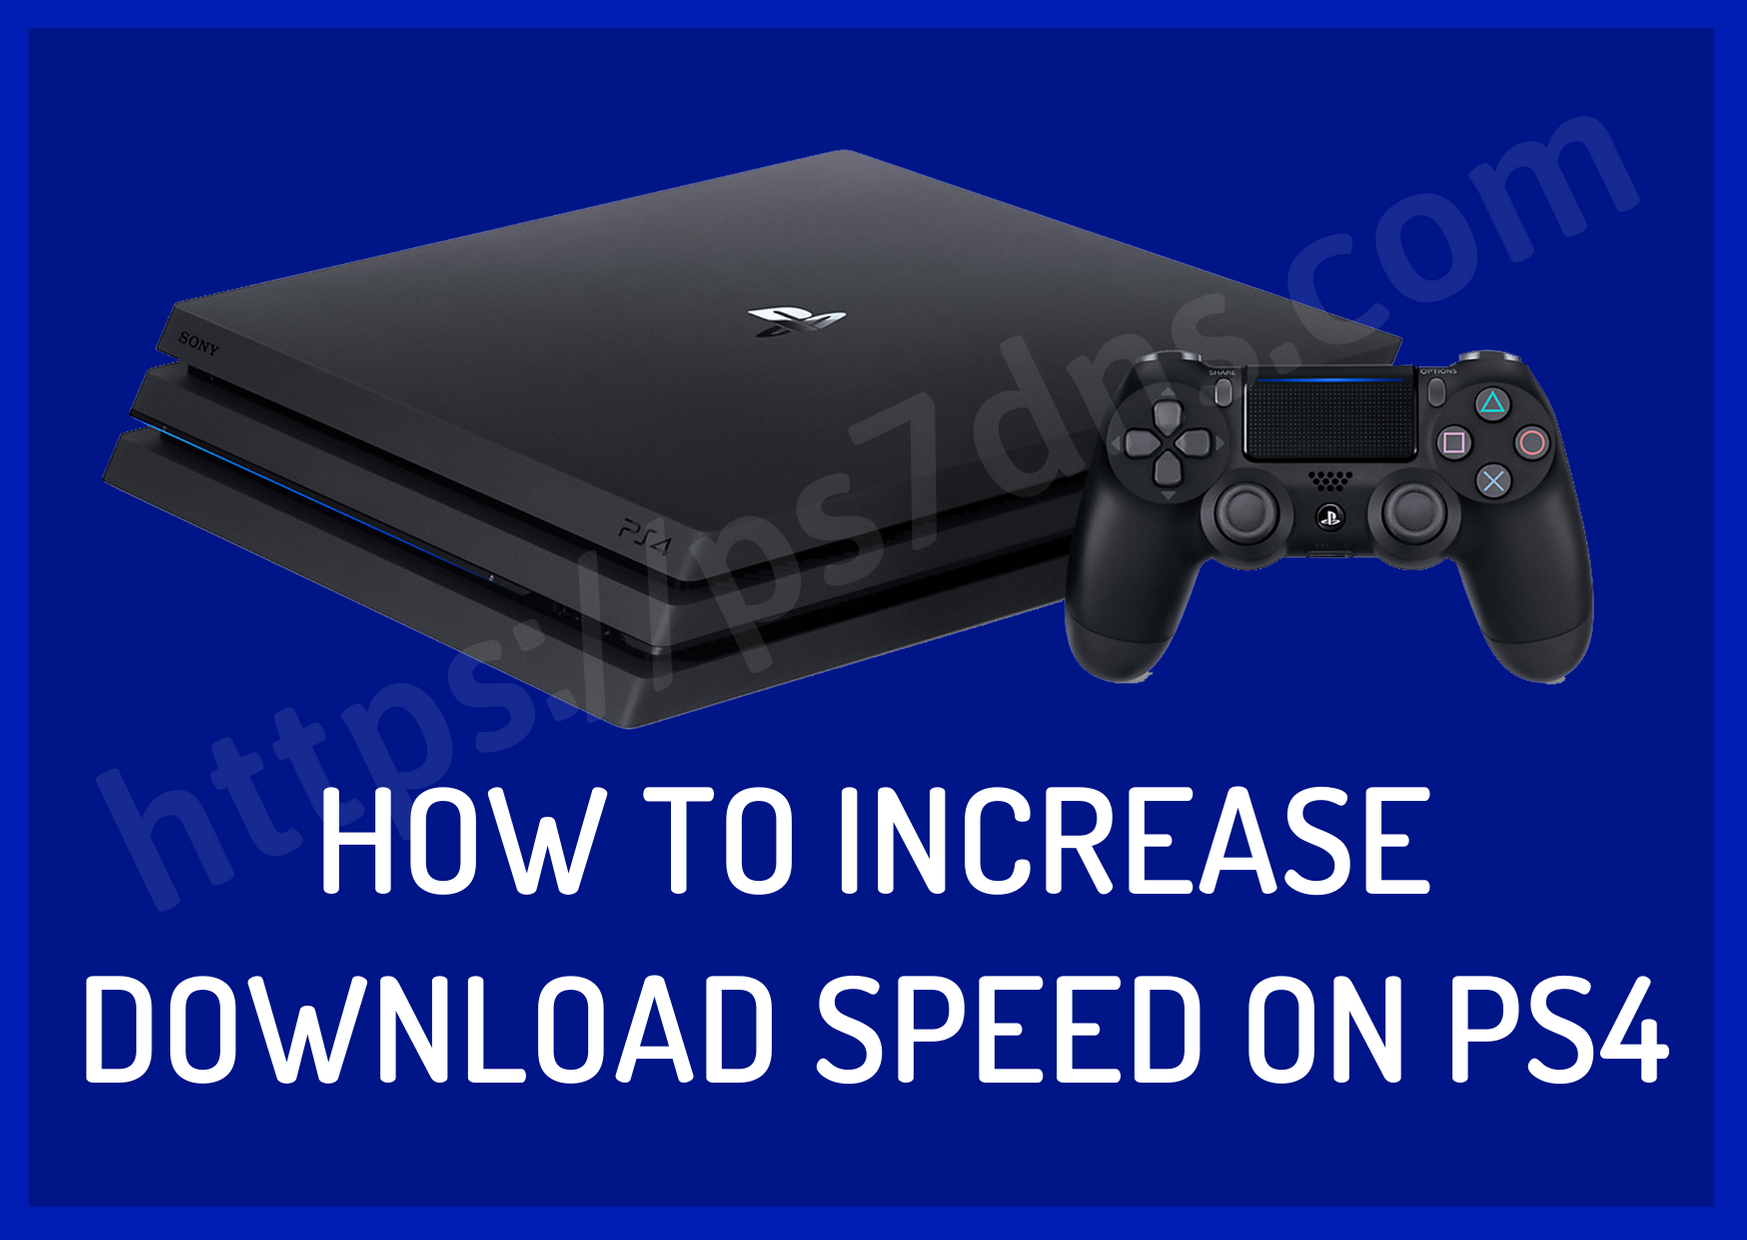 how to increase download speed on ps4